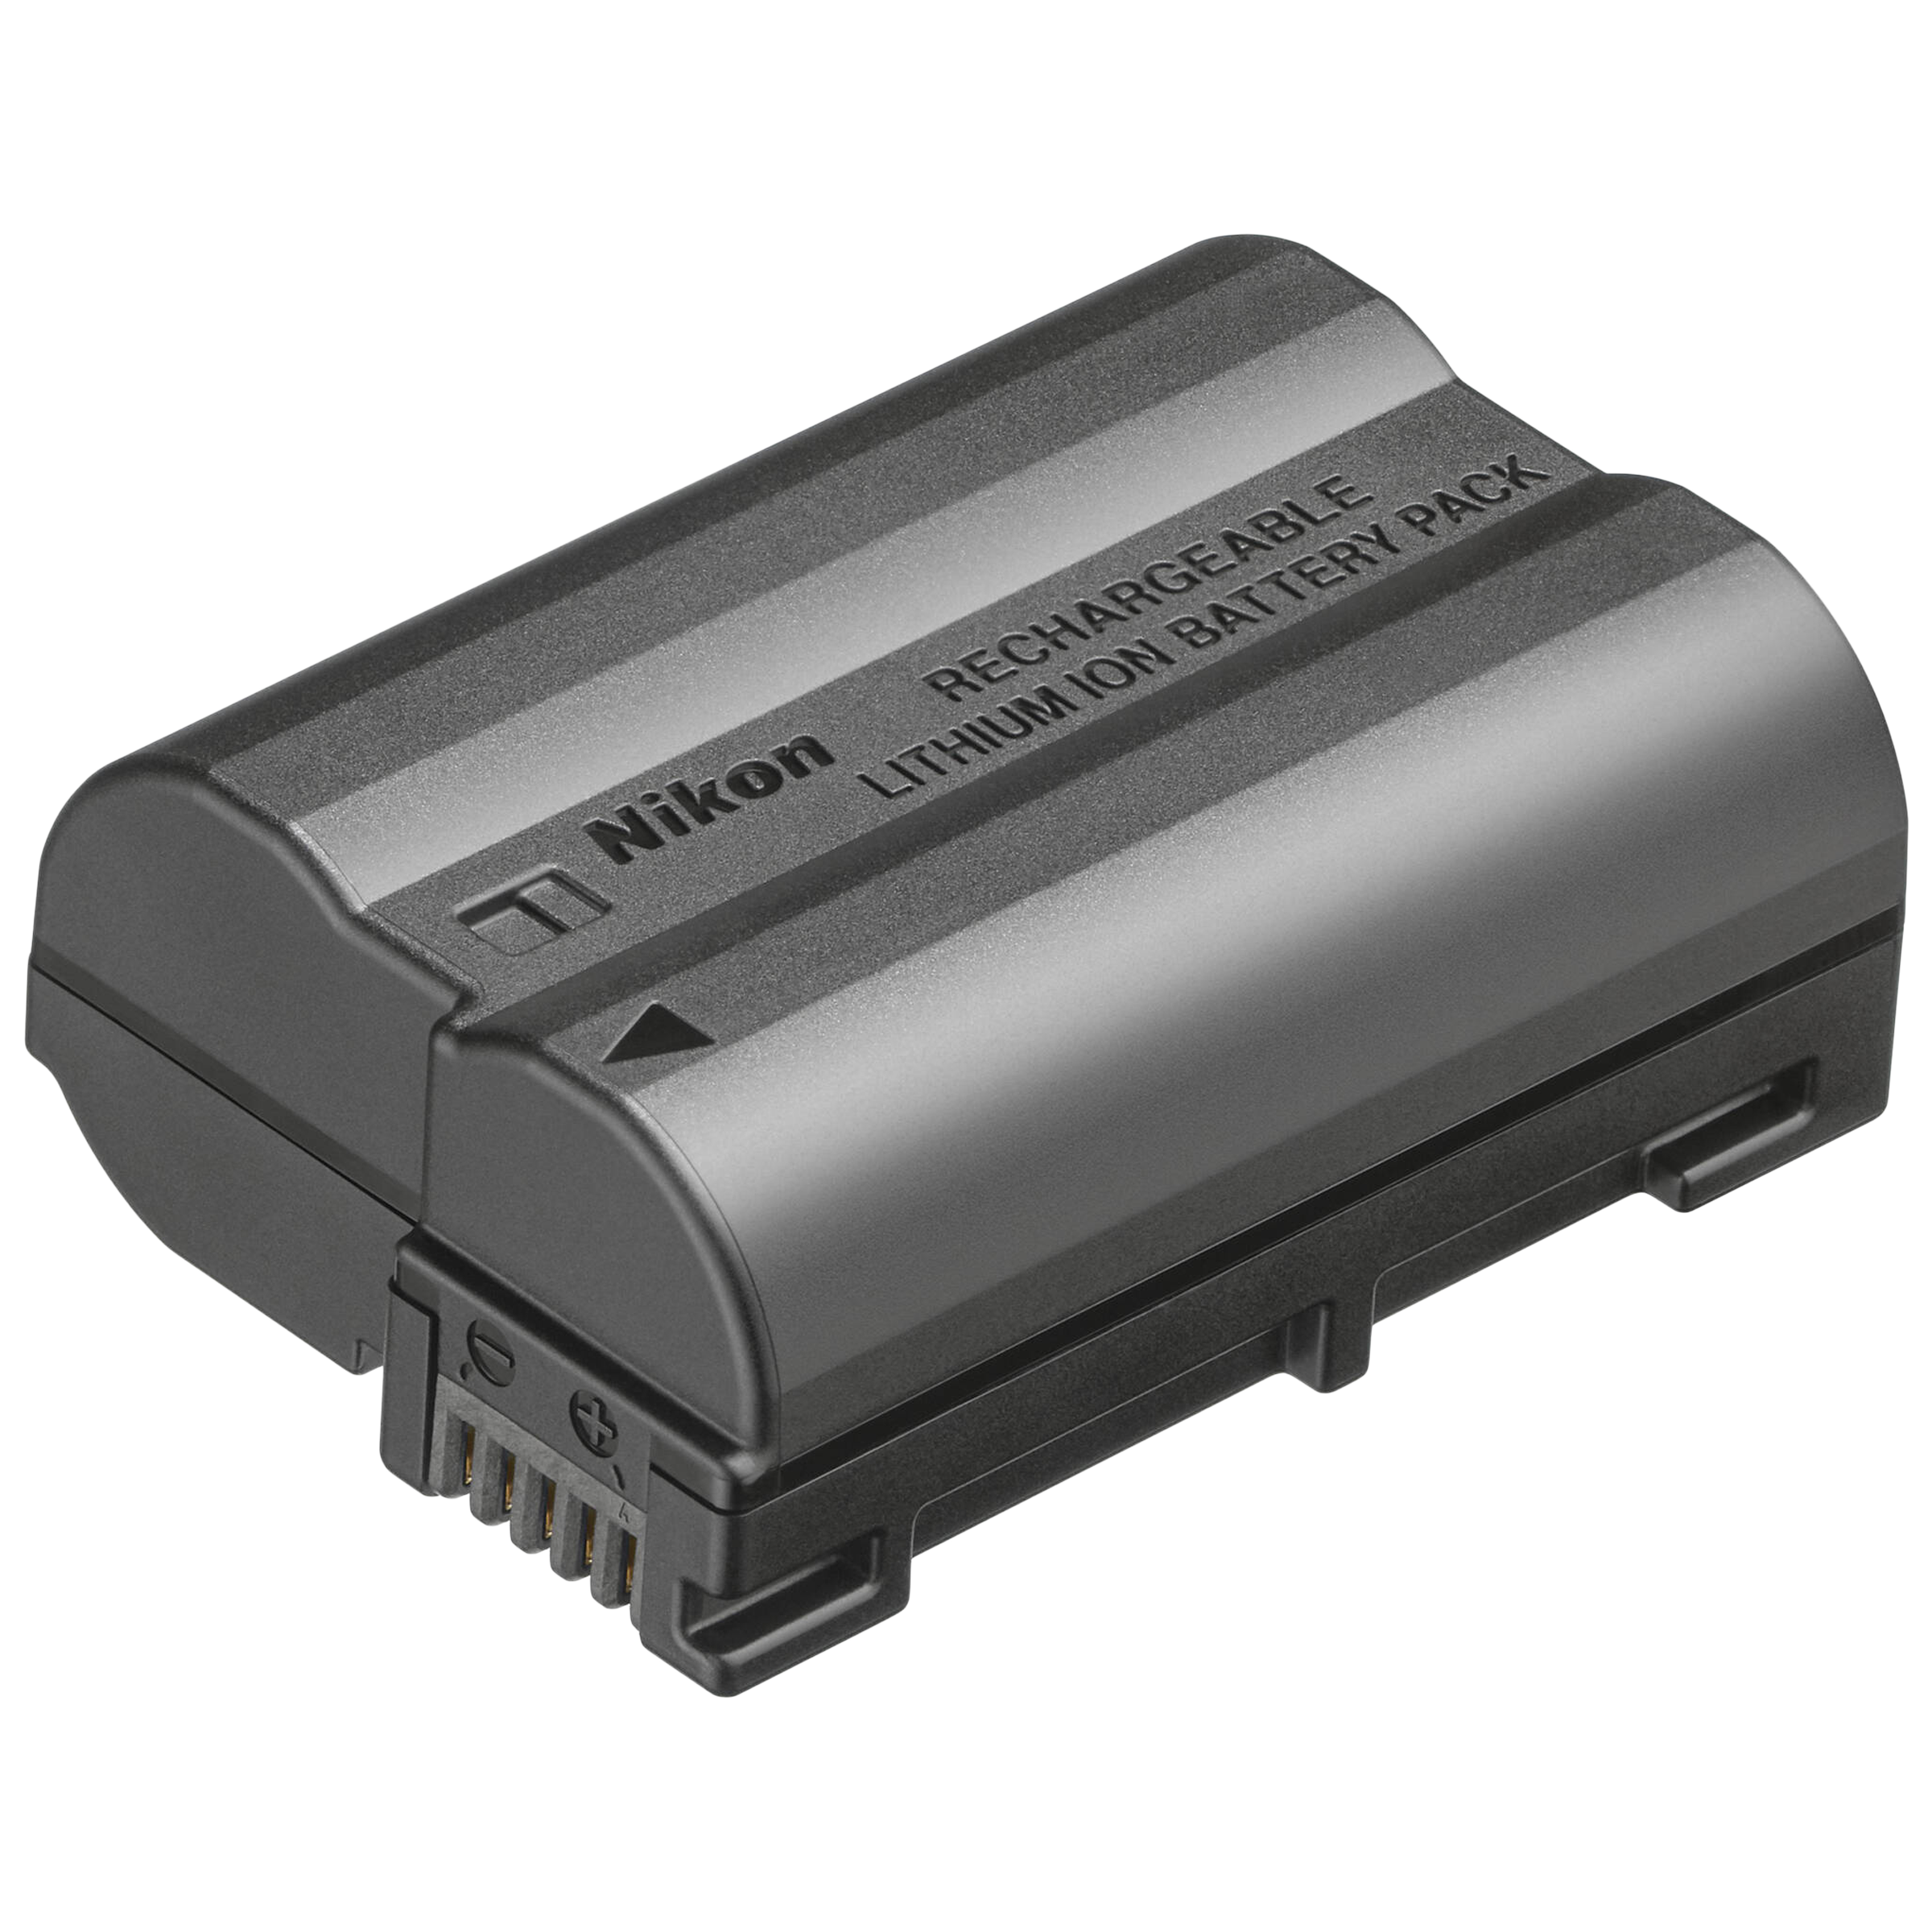 Nikon 2280mAh Lithium-Ion Rechargeable Battery For Z 6II and Z 7II (7 V Output Voltage, EN-EL15C, Black)_1